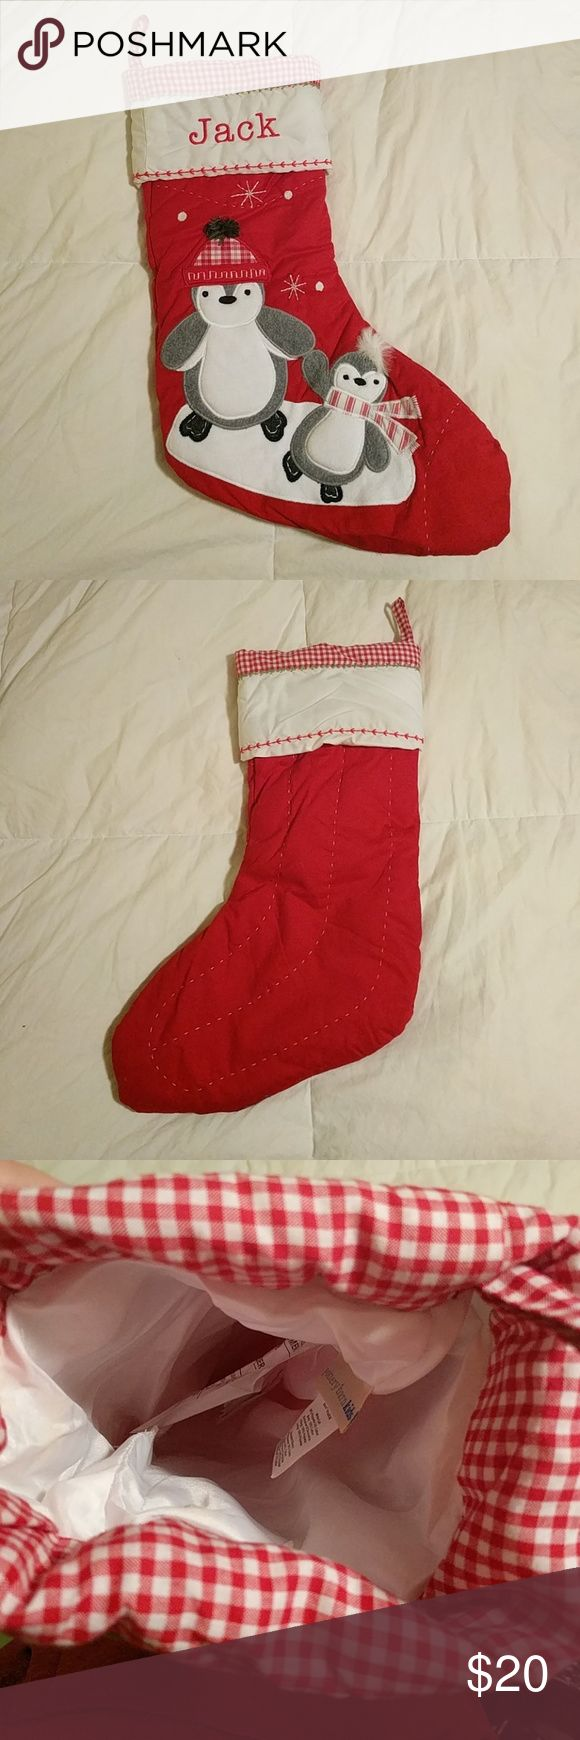 """Red Pottery Barn Christmas Quilted Stocking Like NEW! Personalized Pottery Barn Kids stocking. Used for one Christmas; like new condition. Adorable penguins accompany the name """"Jack"""" on this beautiful holiday stocking! From hanging loop straight down, the stocking measures 16 inches long. Pottery Barn Other"""